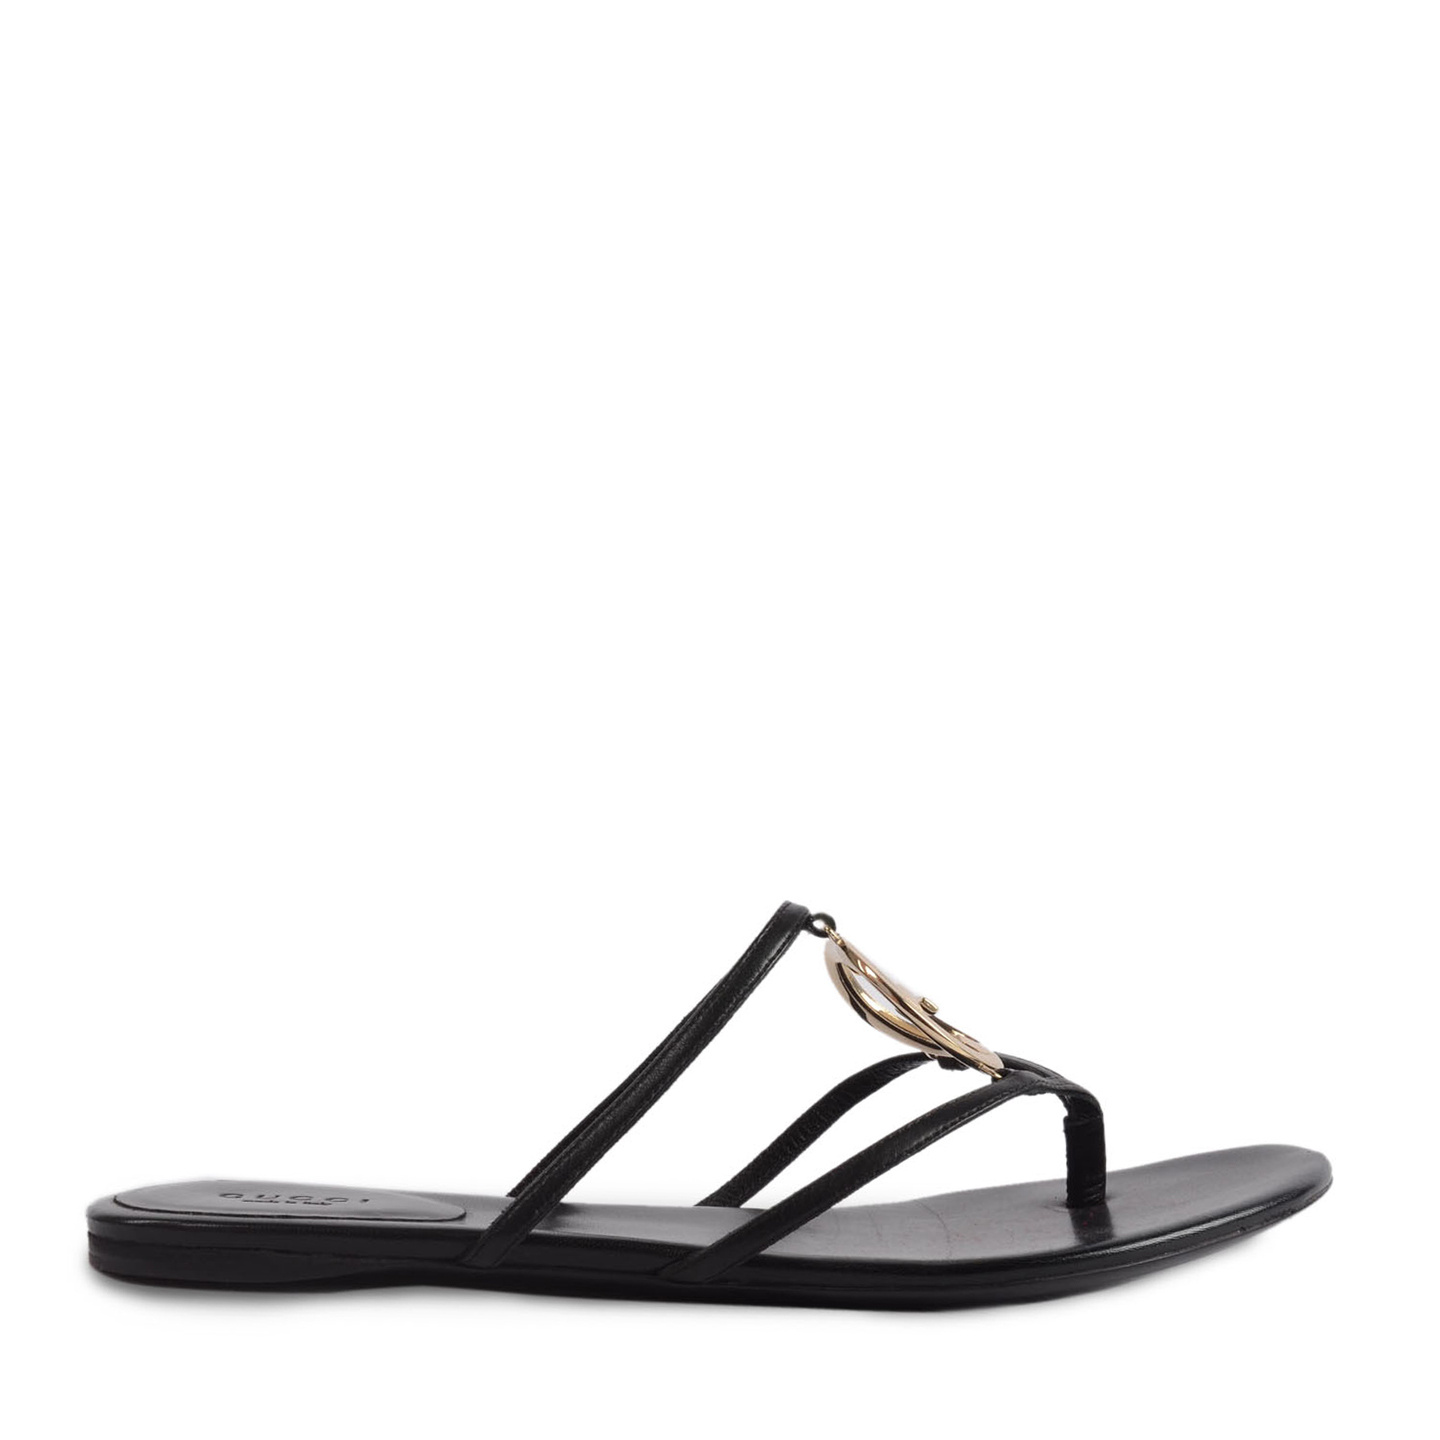 9084ee56a 4889 copy · Gucci Leather GG Cage Flat Thong Sandals Size 39 ...